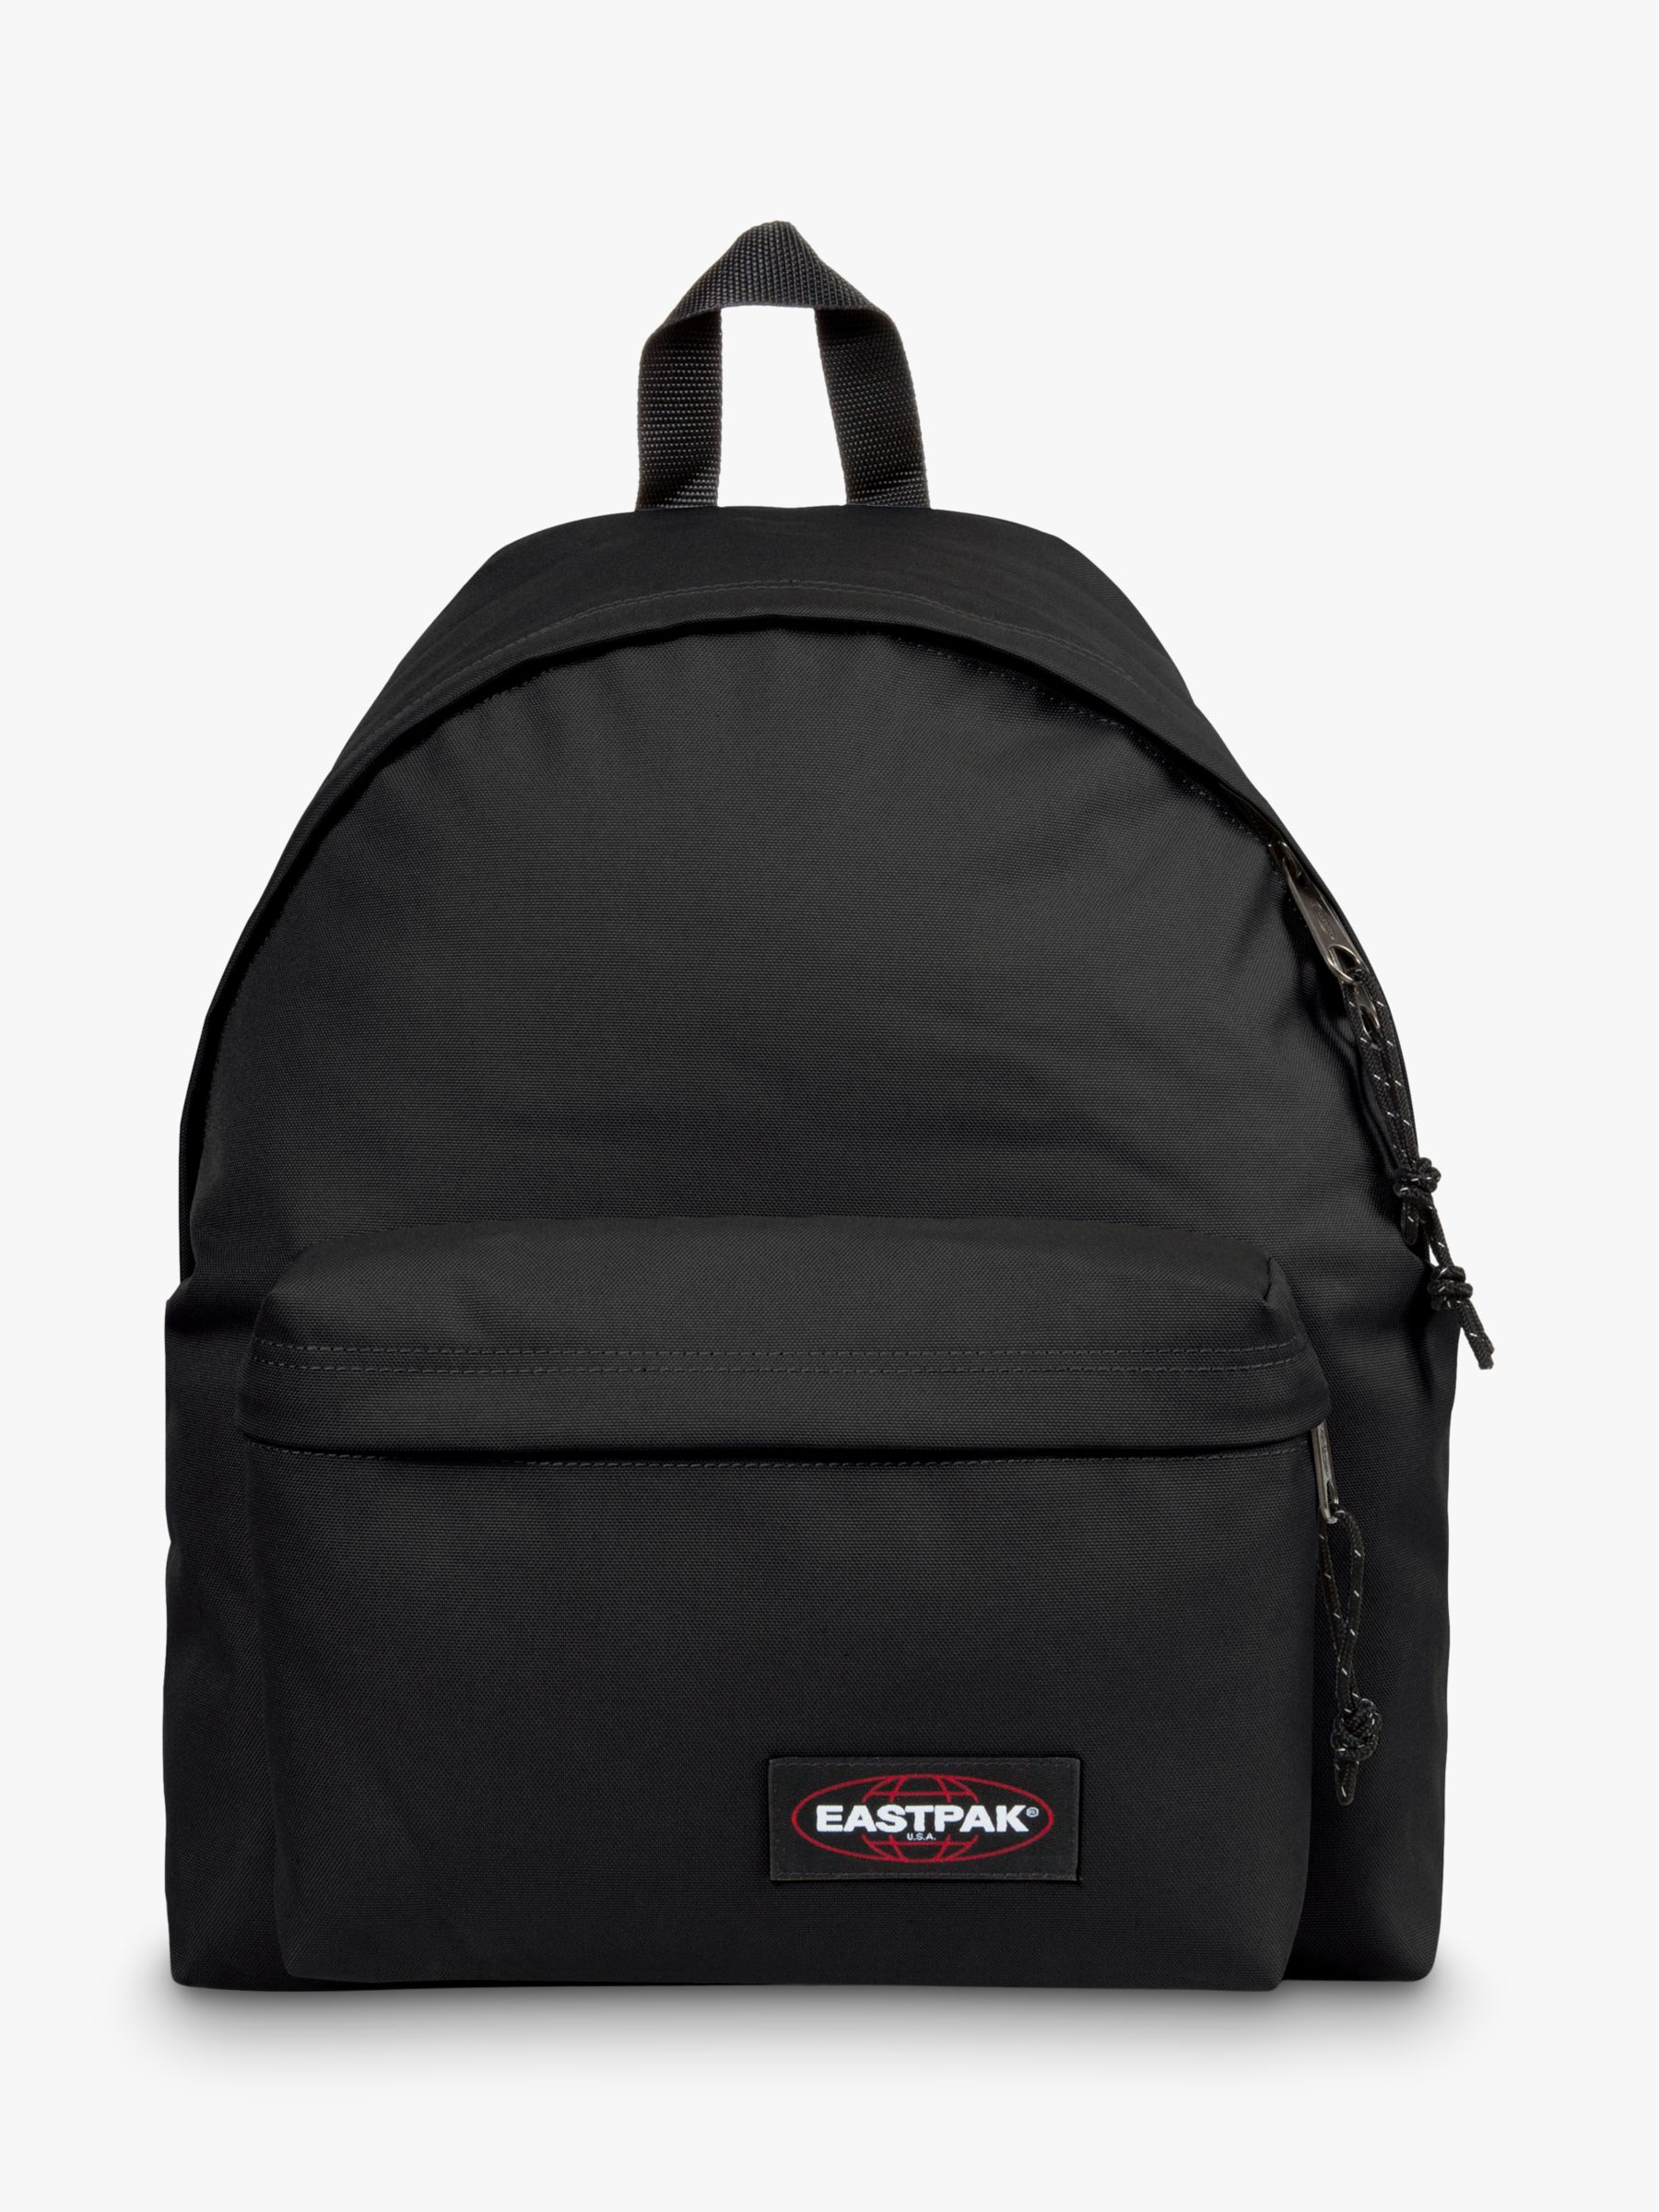 Eastpak Eastpak Padded Pak'r Backpack, Black